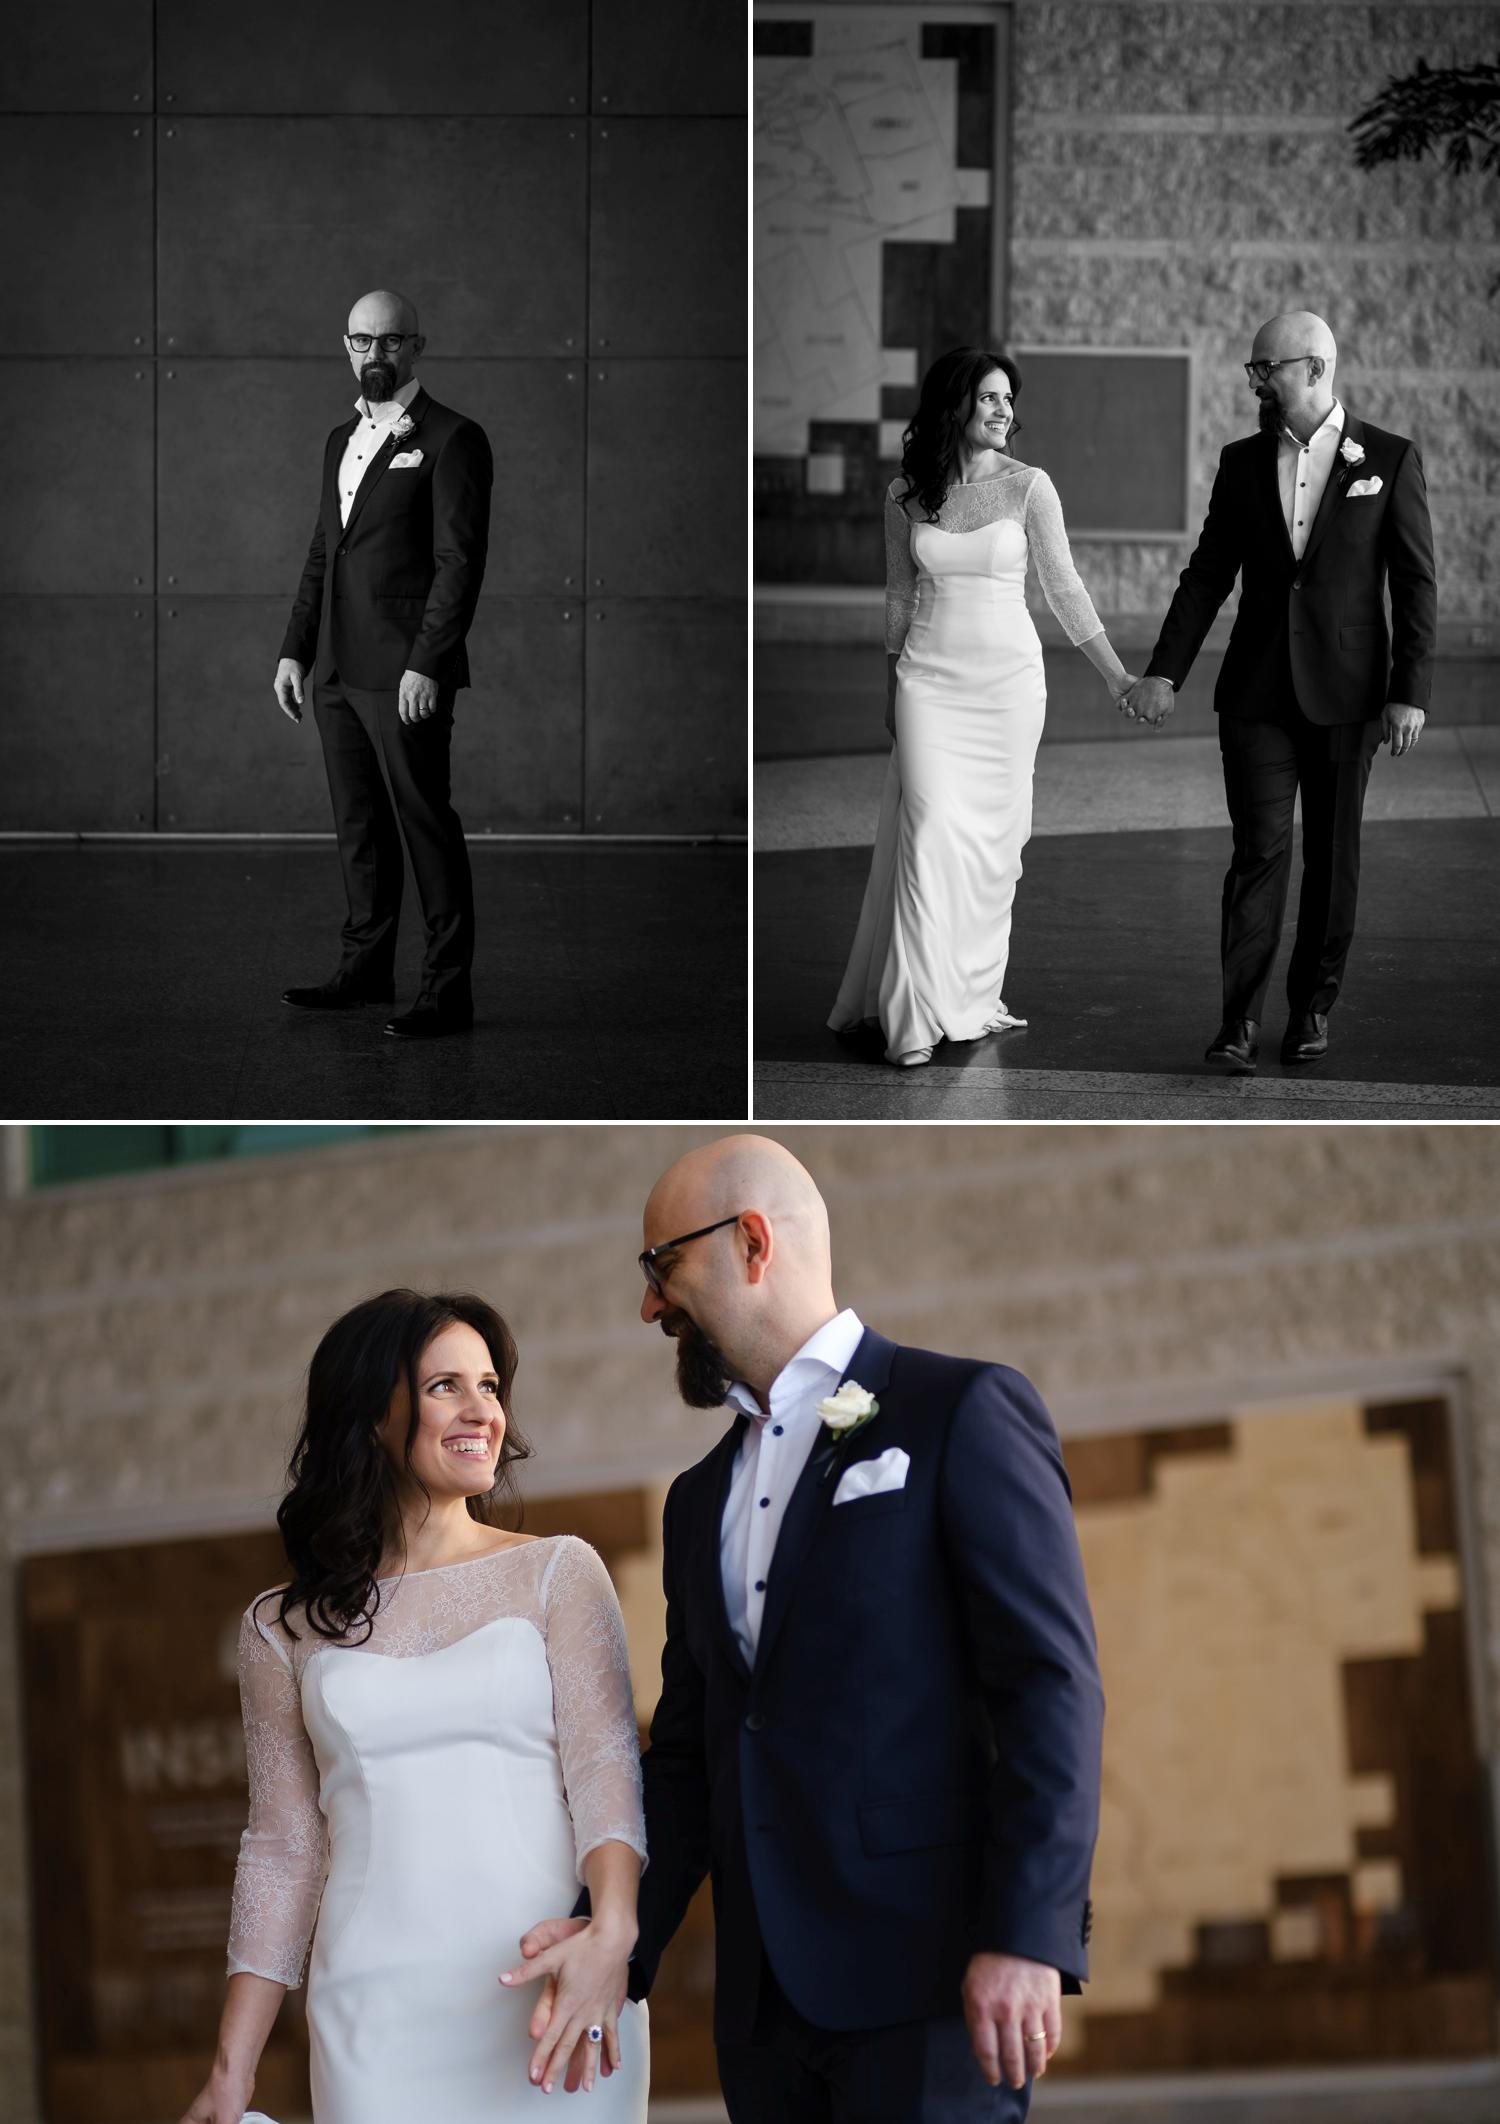 Photographs of a bride and groom in Ottawa City Hall